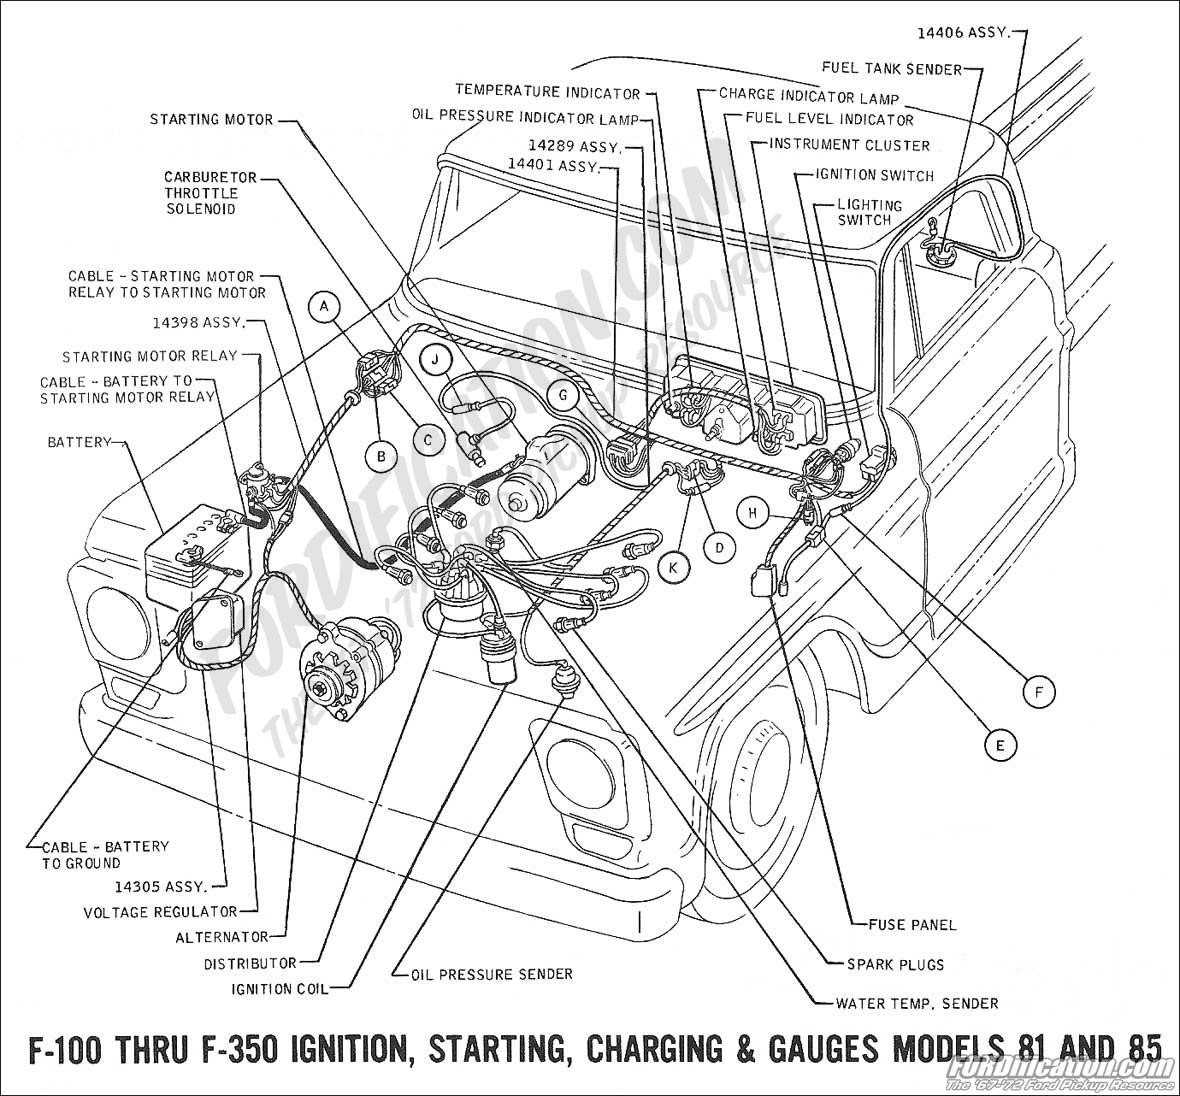 wiring 1969charging ford truck technical drawings and schematics section h wiring 1976 ford f100 wiring diagram at bayanpartner.co